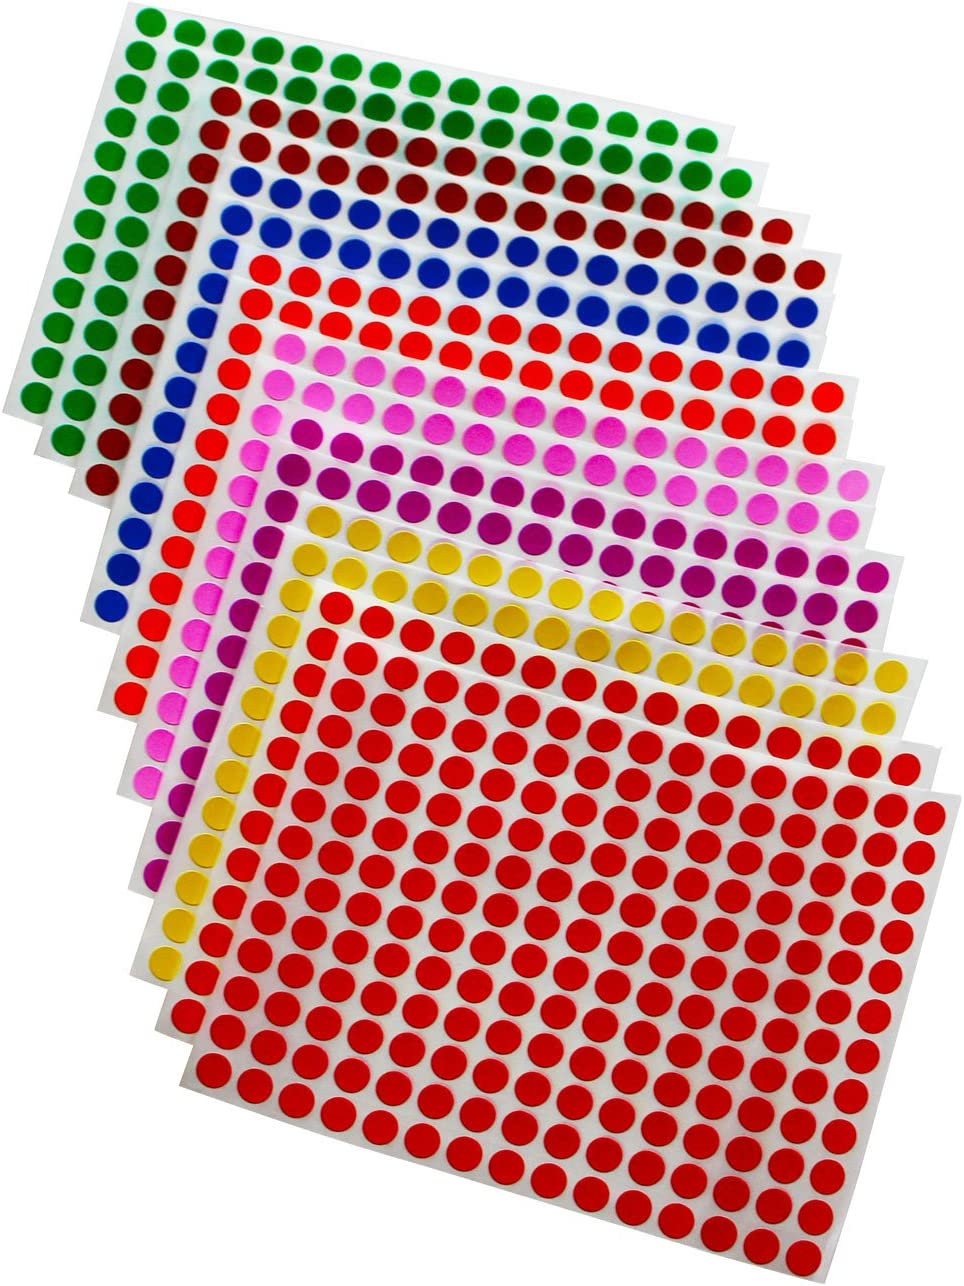 Amazon.com : Royal Green Colored Labels 1/4 inch 8mm 5/16 Dot Stickers in  Green, Yellow, Pink, Purple, Orange, Brown, Blue and Red 2688 Pack : Office  Products